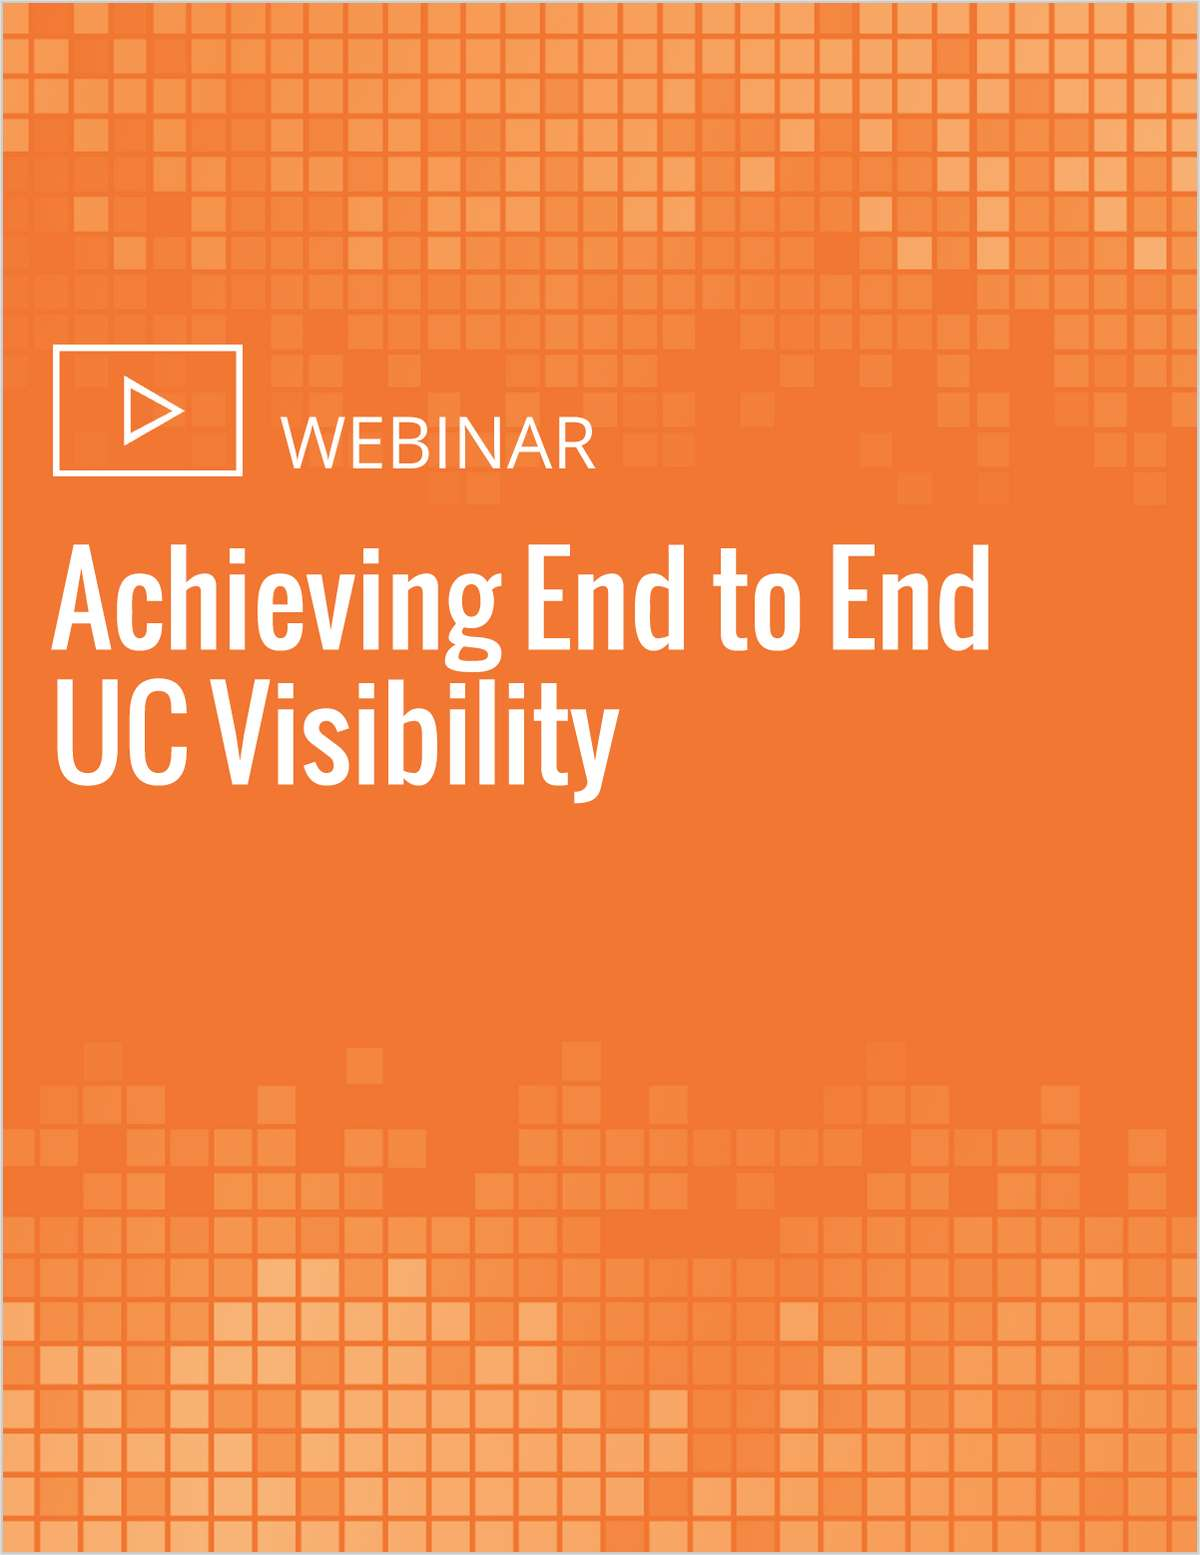 Achieving End to End UC Visibility